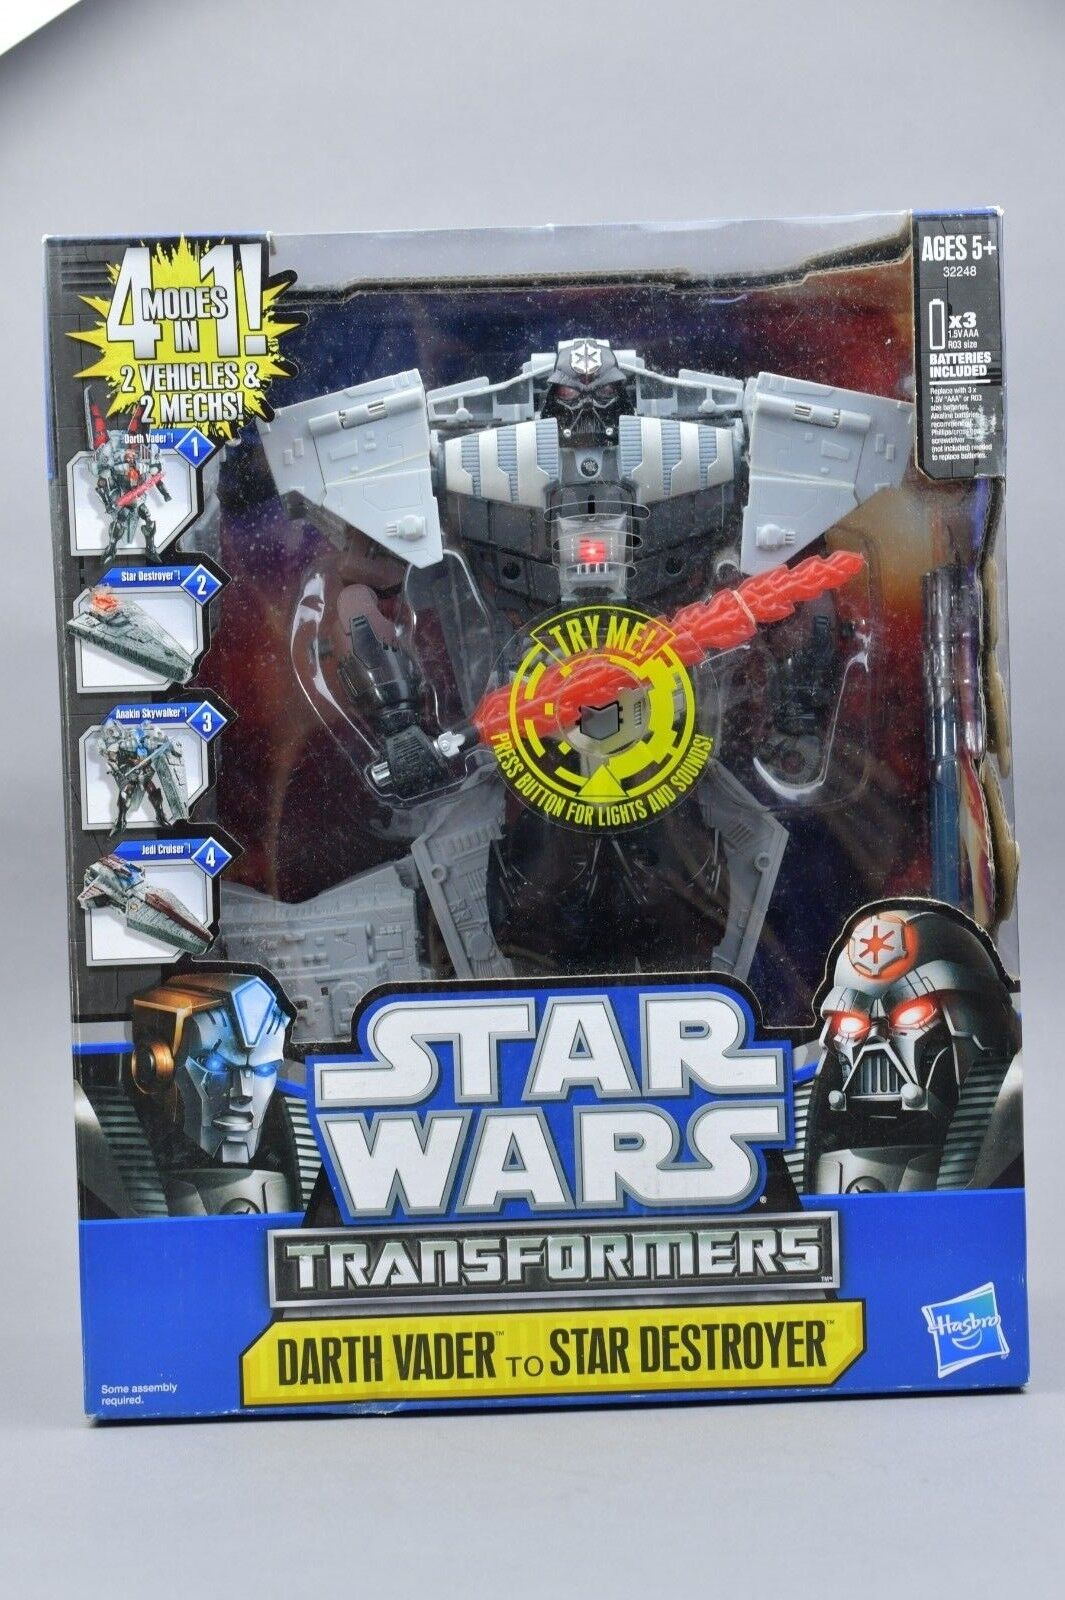 Transformers Star Wars Credver Darth Vader Star Destroyer MISB